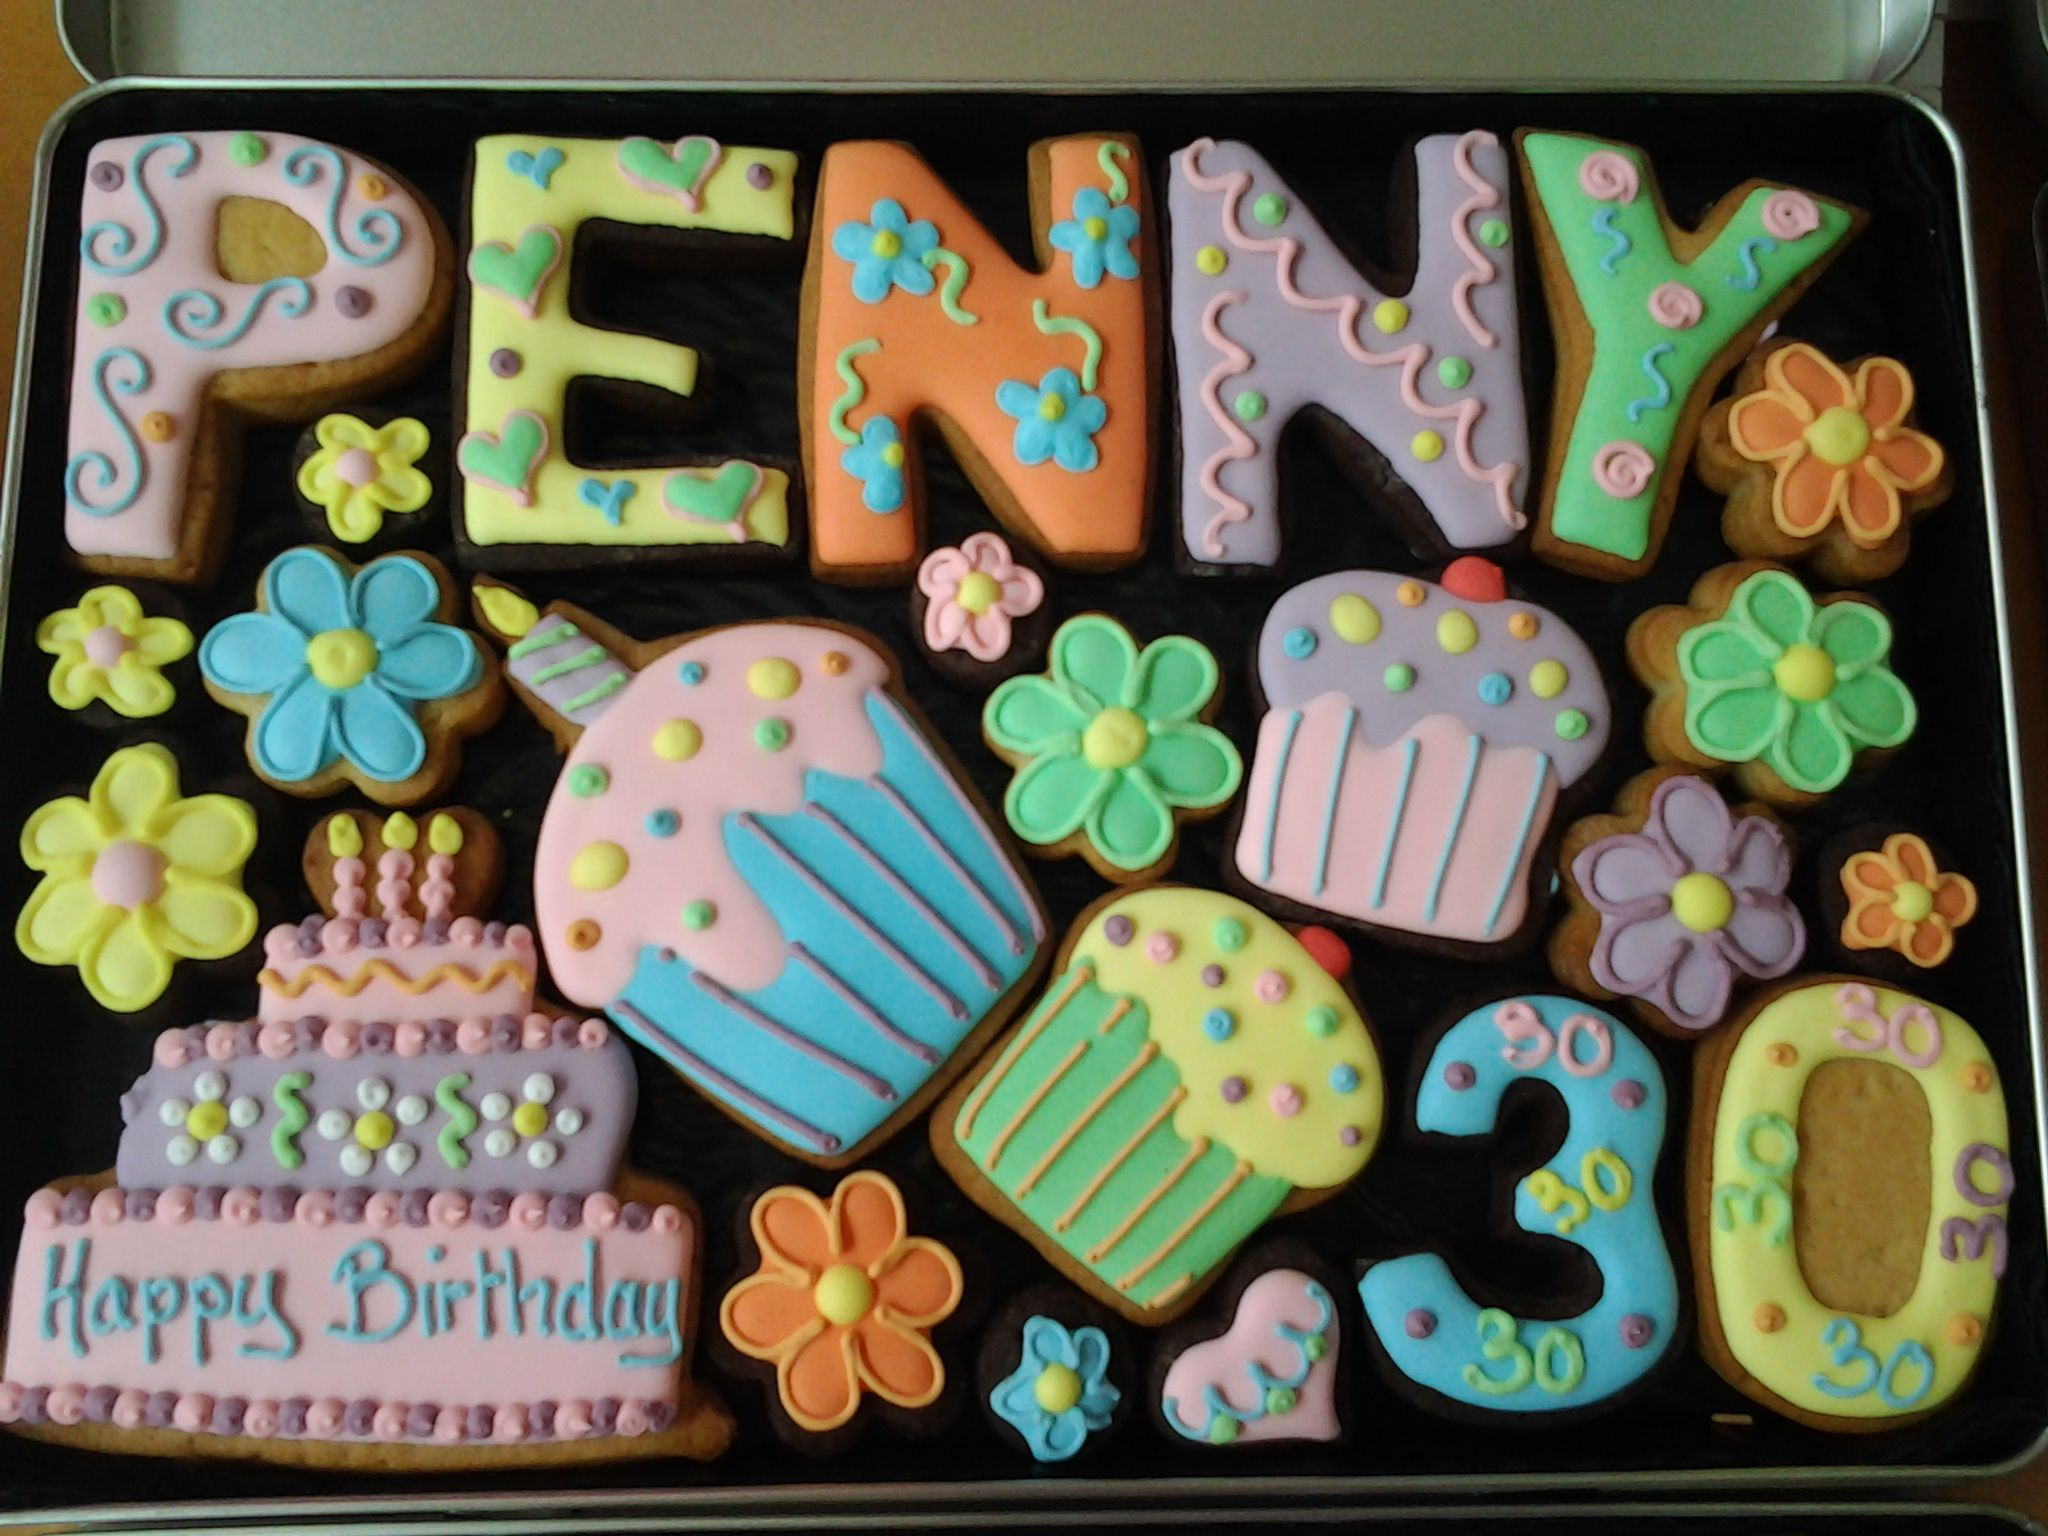 Happy 30th Birthday cookies for Penny cookies gift birthday